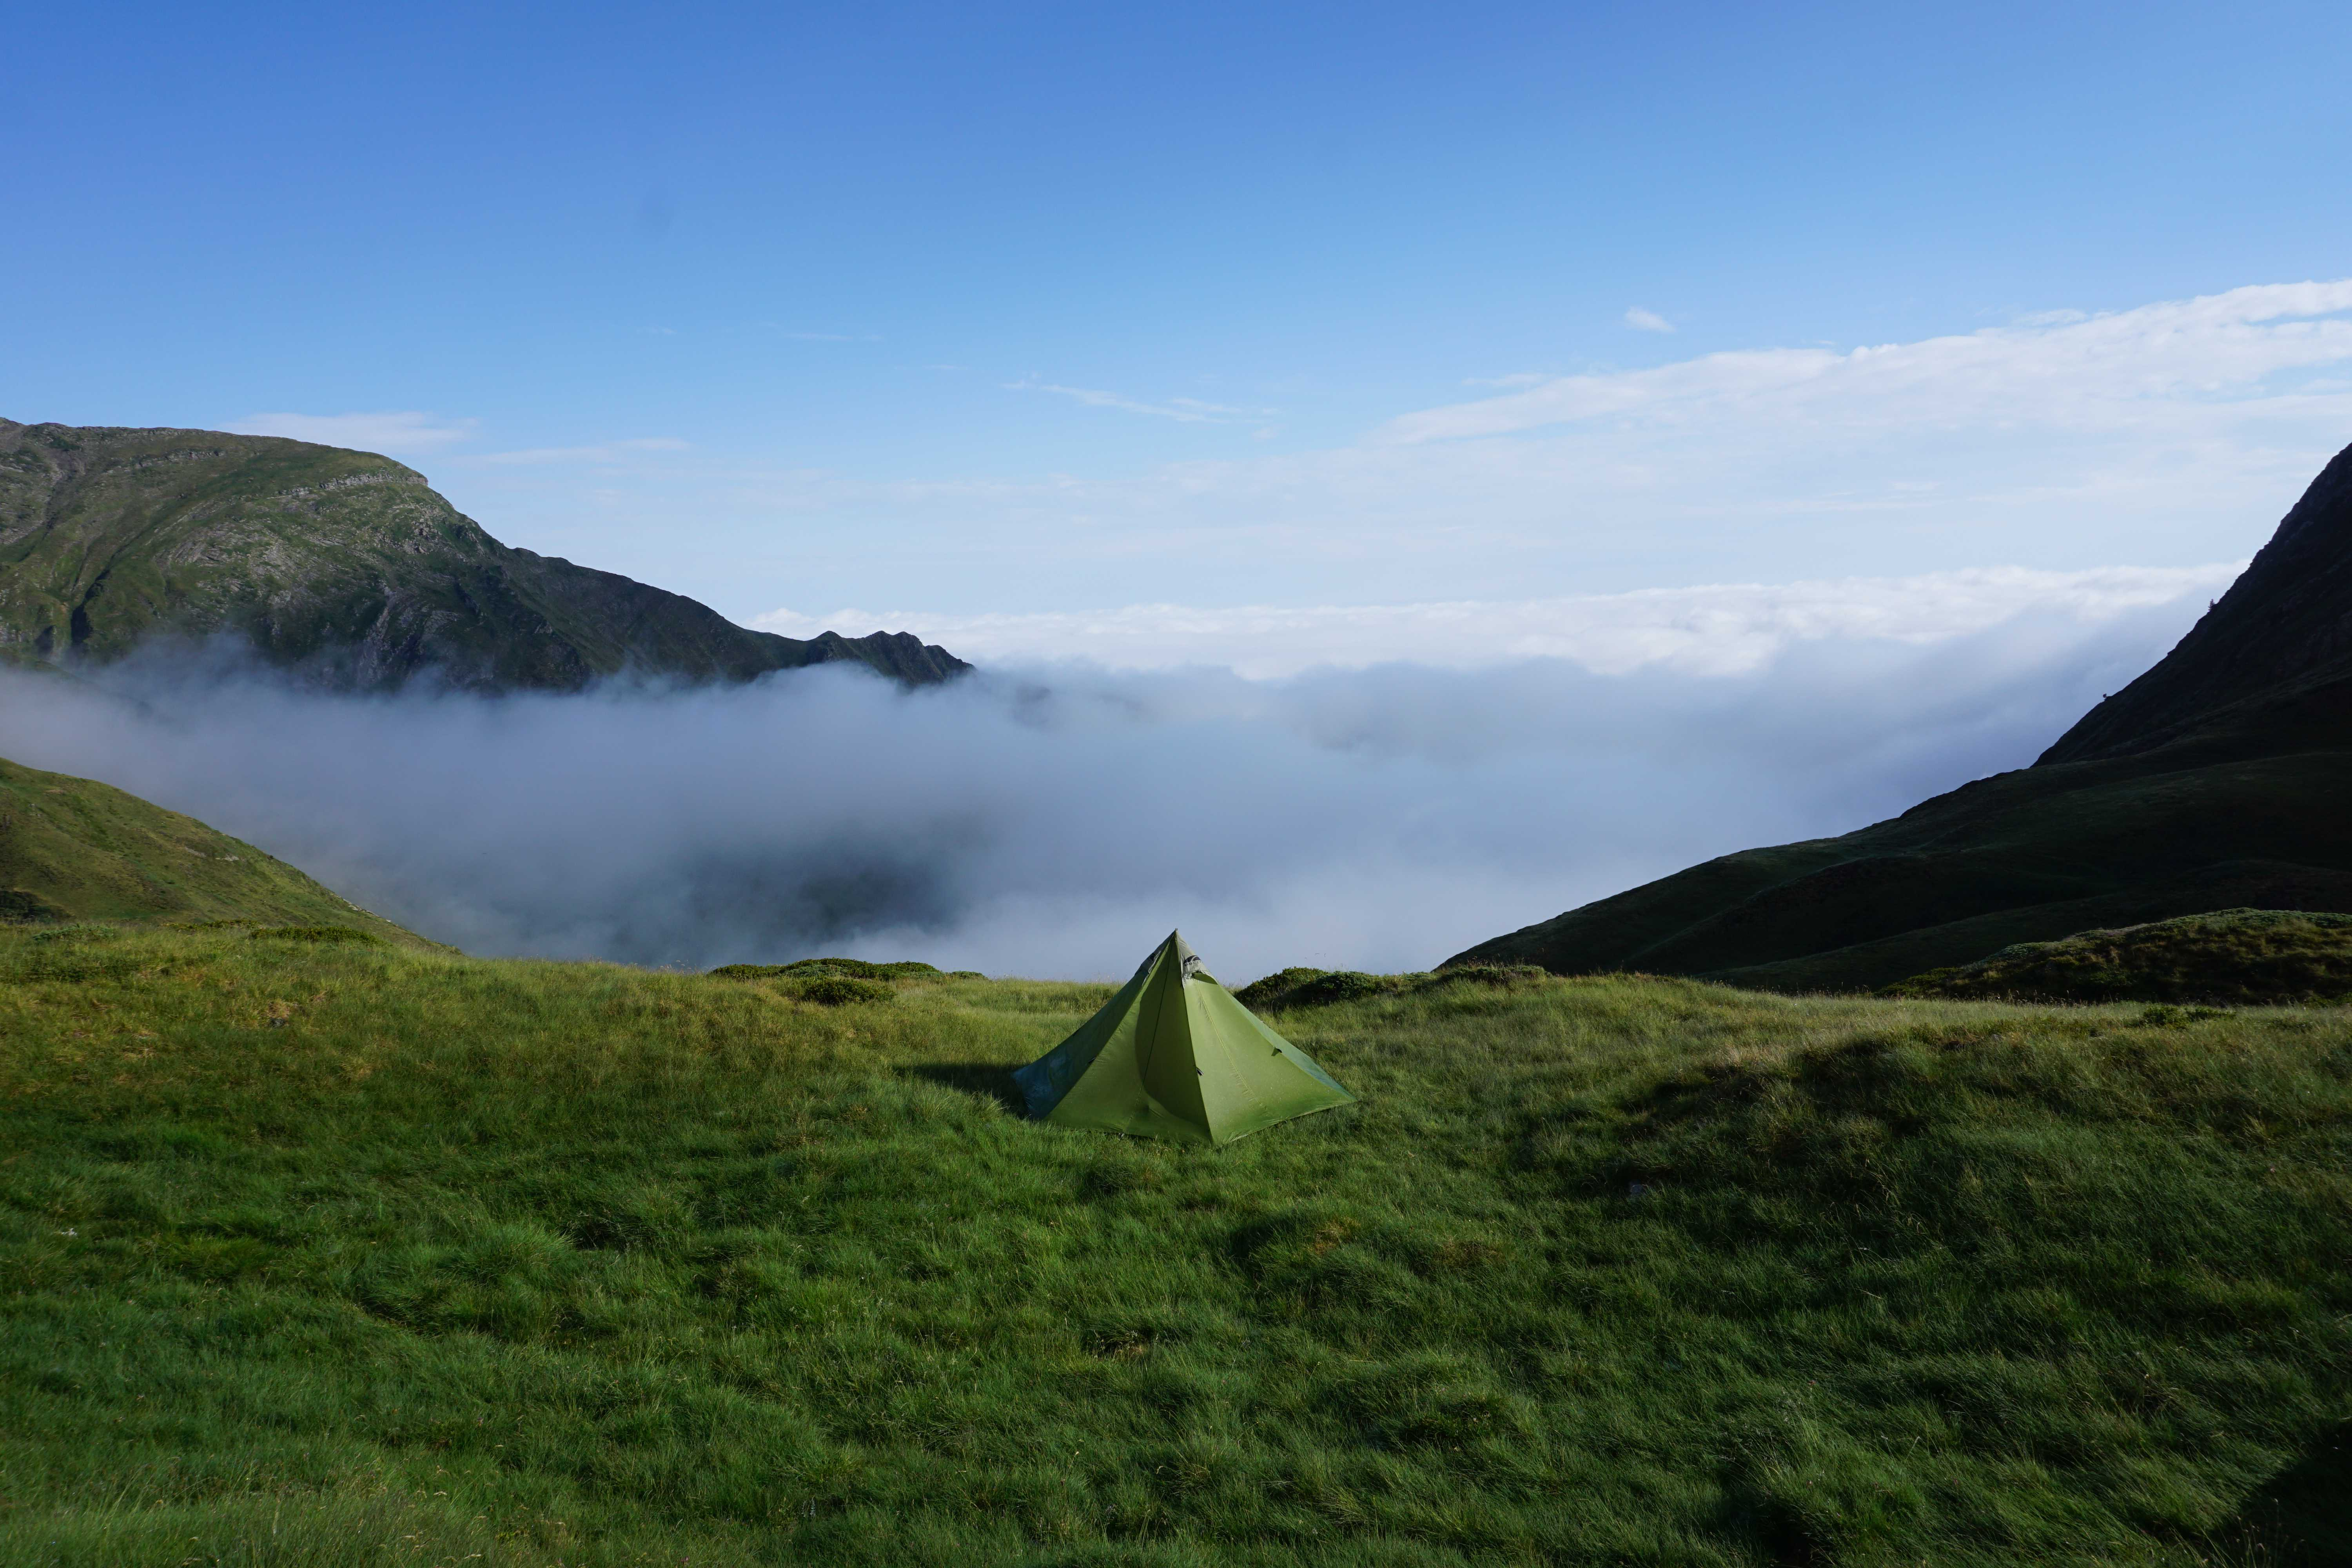 Triangular go light tent pitched on a mountain with cloud in the valley below